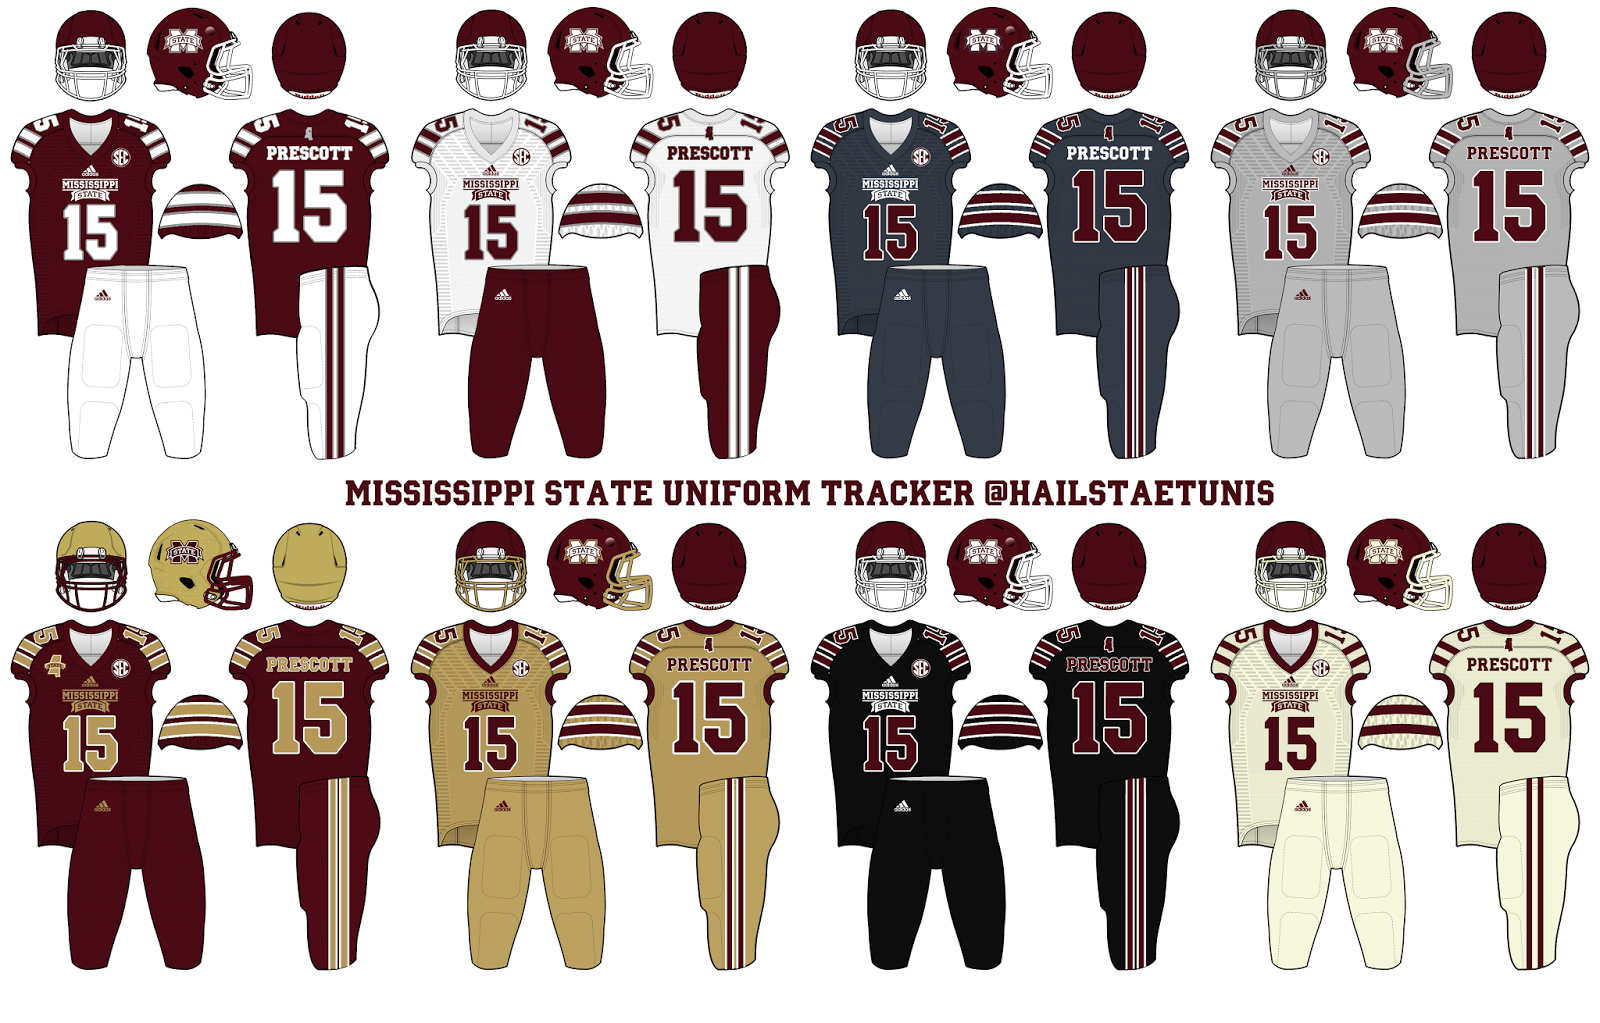 c3c980b775a Mississippi St. Football Uniform Tracker: Concepts